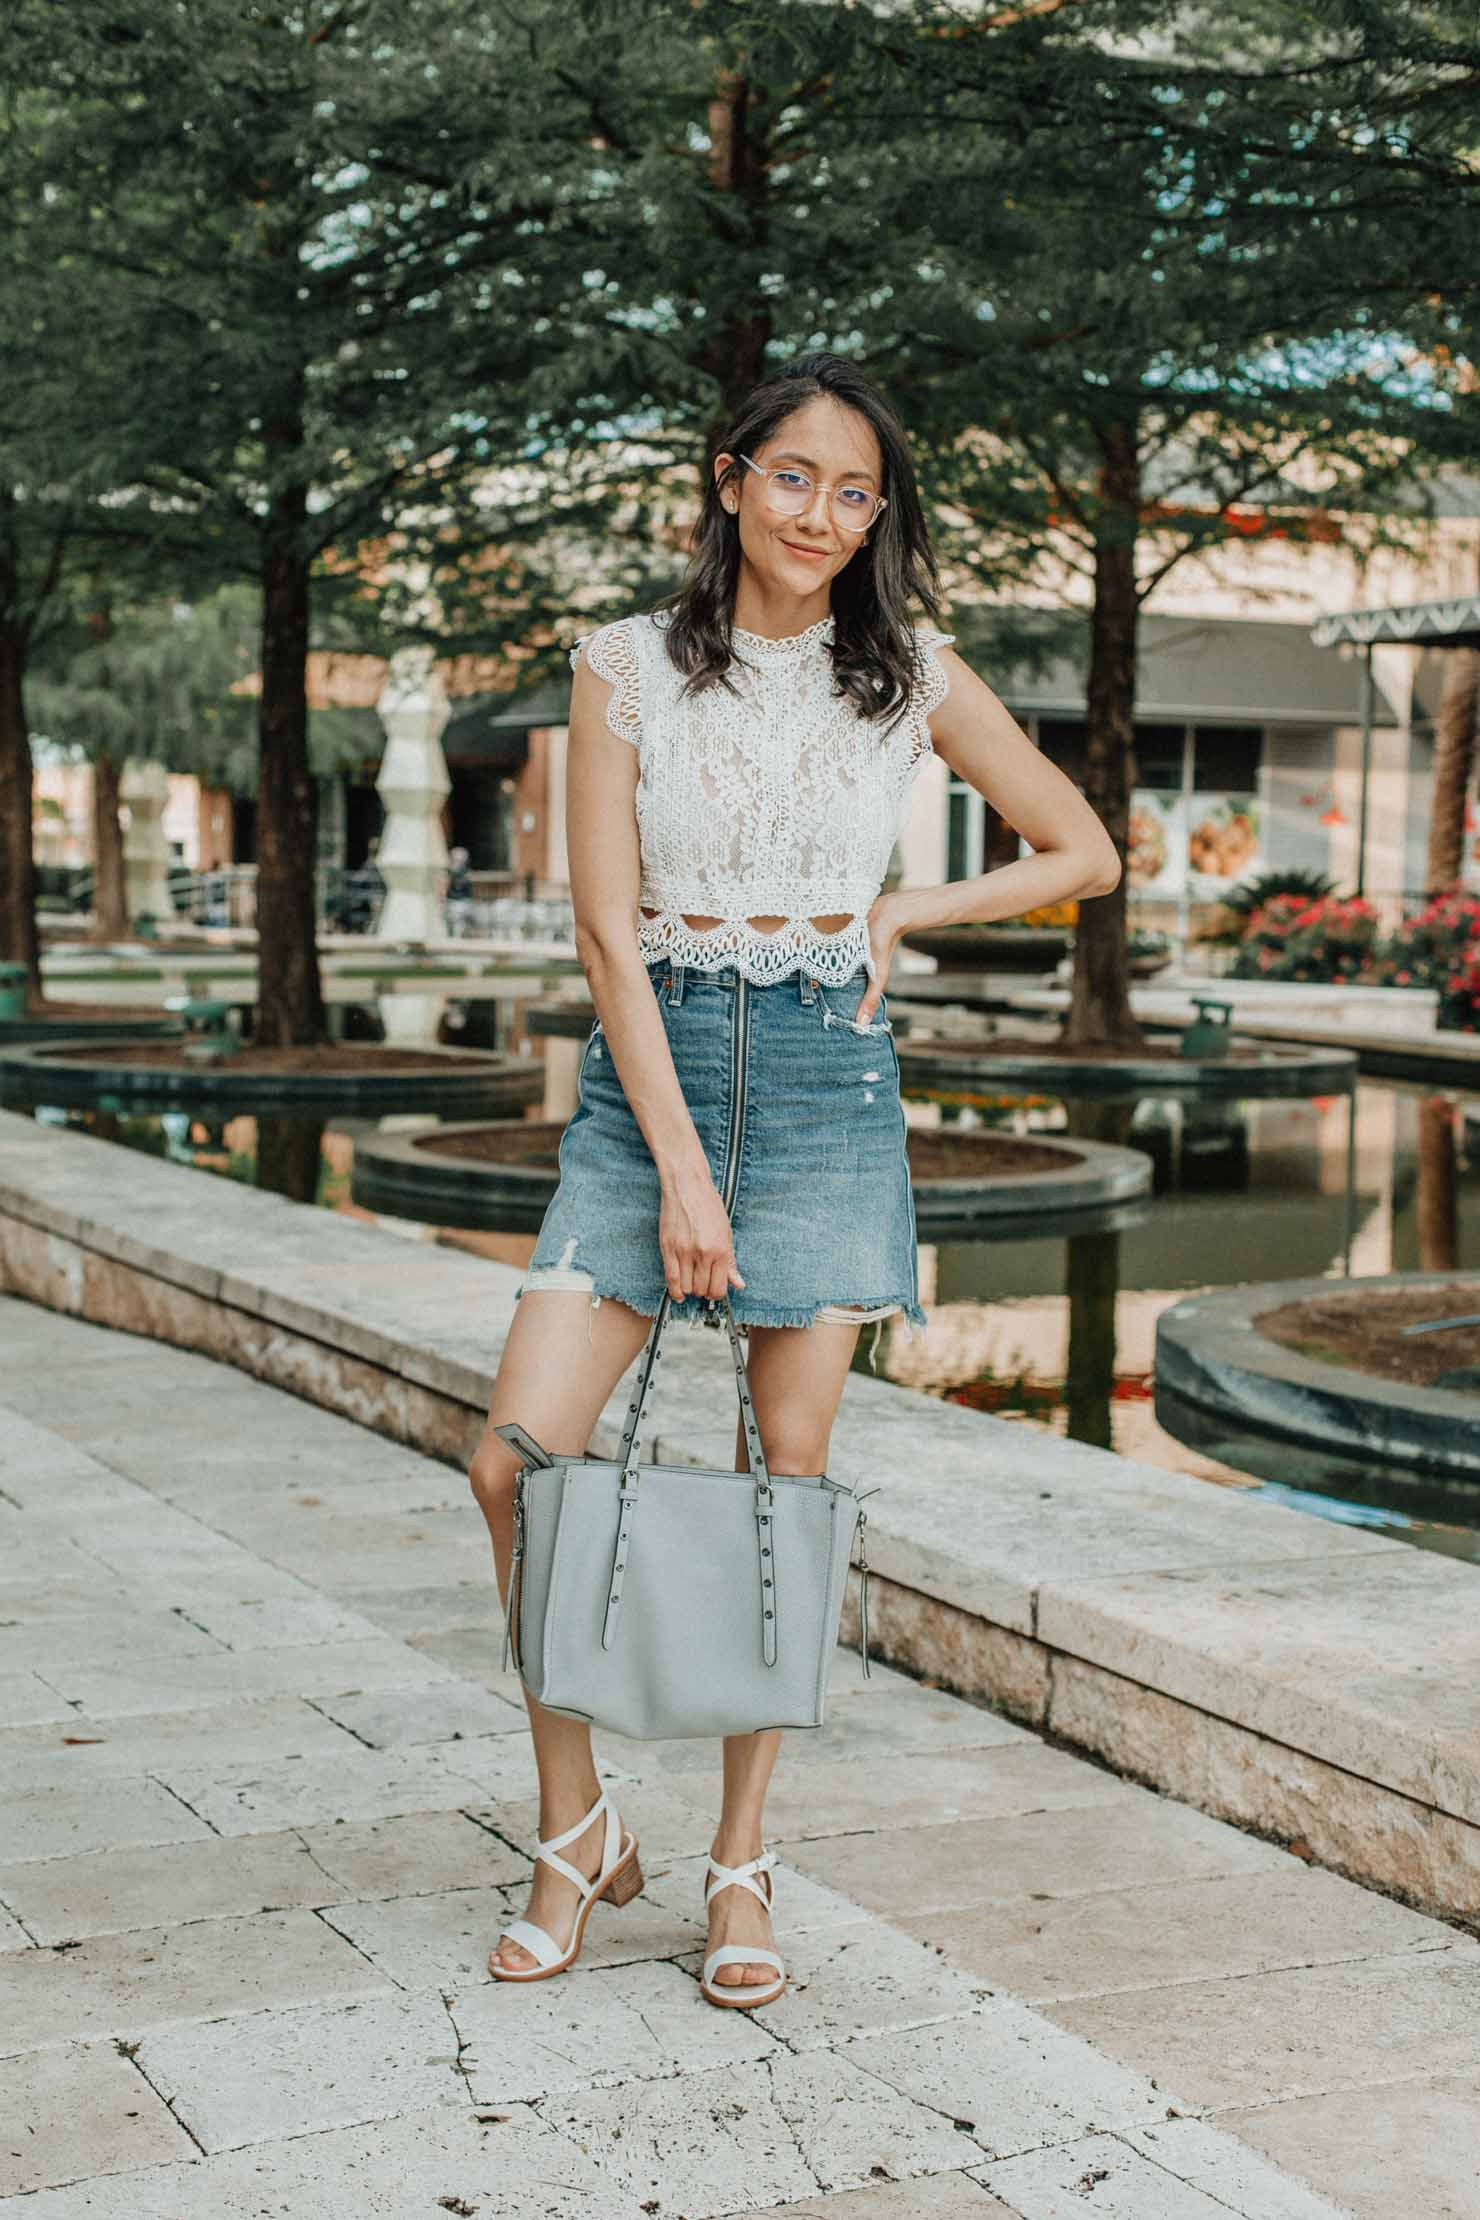 Lilly Beltran, Houston fashion blogger accessorizing her summer looks with Coastal glasses